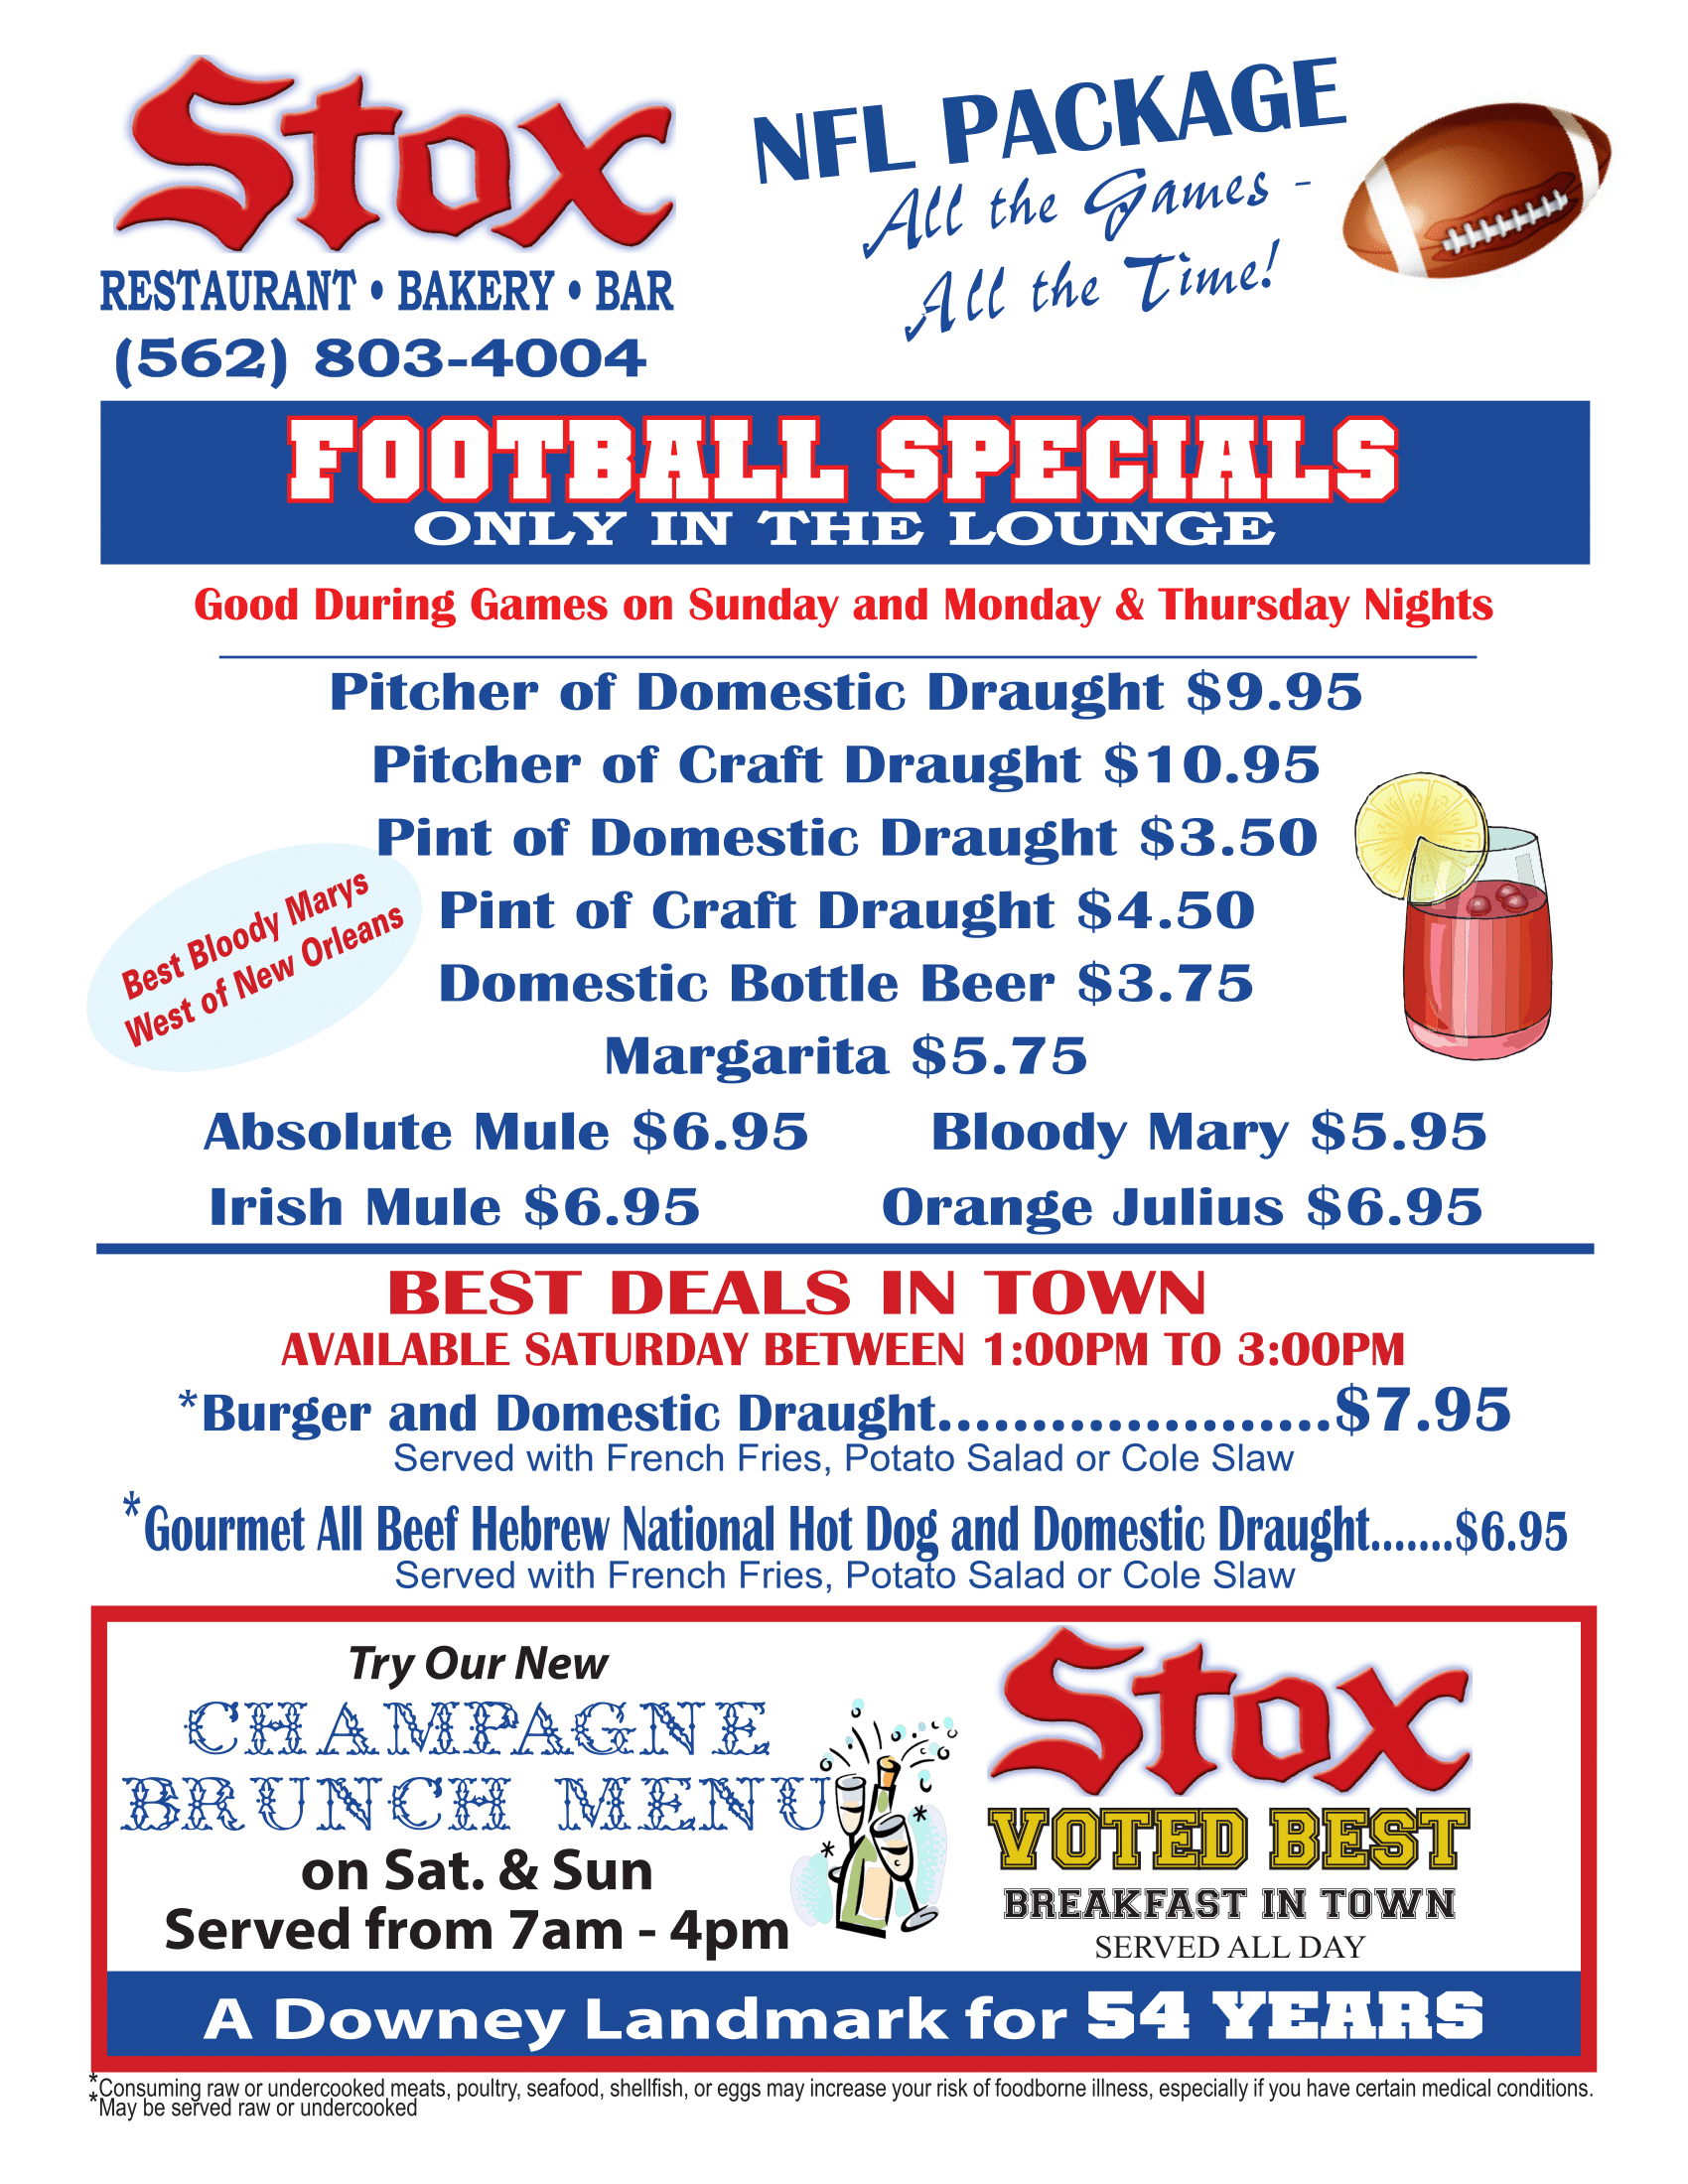 Stox Football Specials. Click image to view readable PDF.